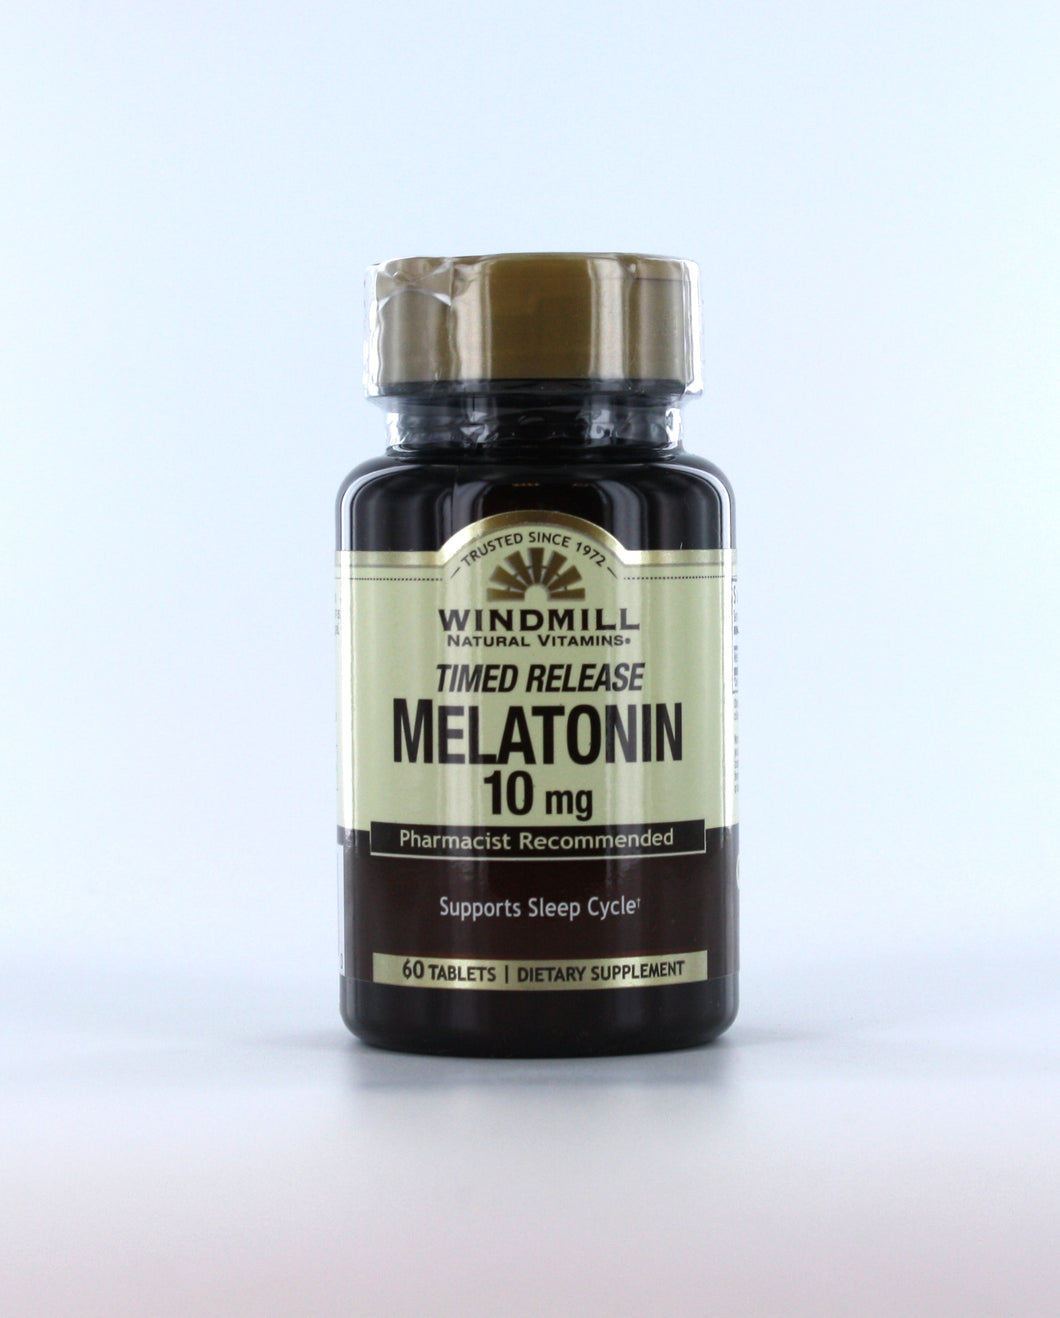 Melatonin 10 mg Timed Release